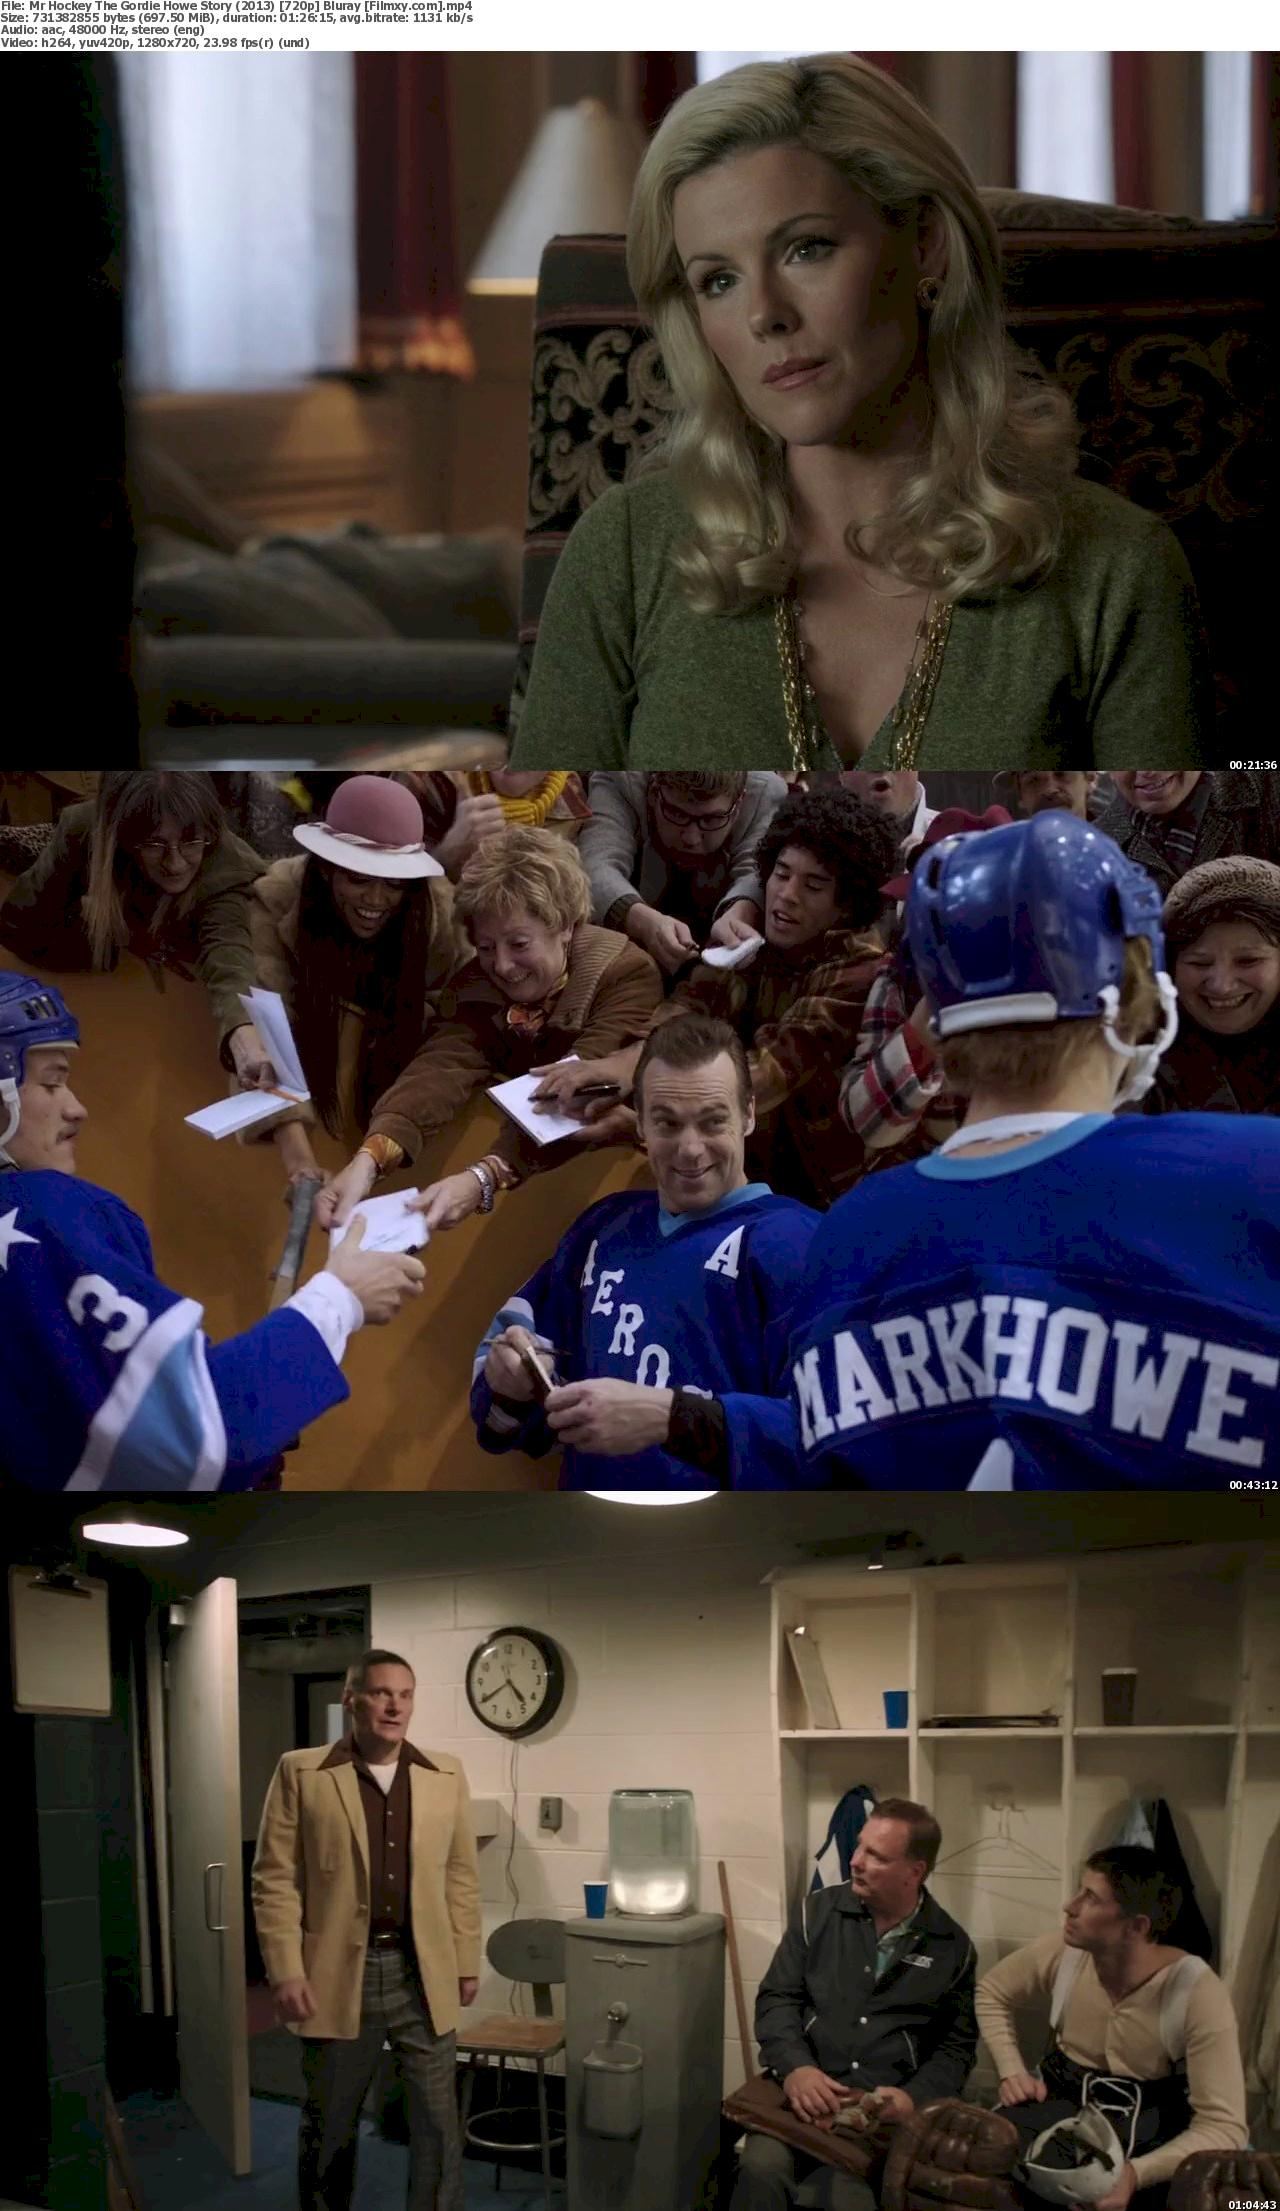 Mr. Hockey: The Gordie Howe Story (2013) 720p & 1080p Bluray Free Download 720p Screenshot